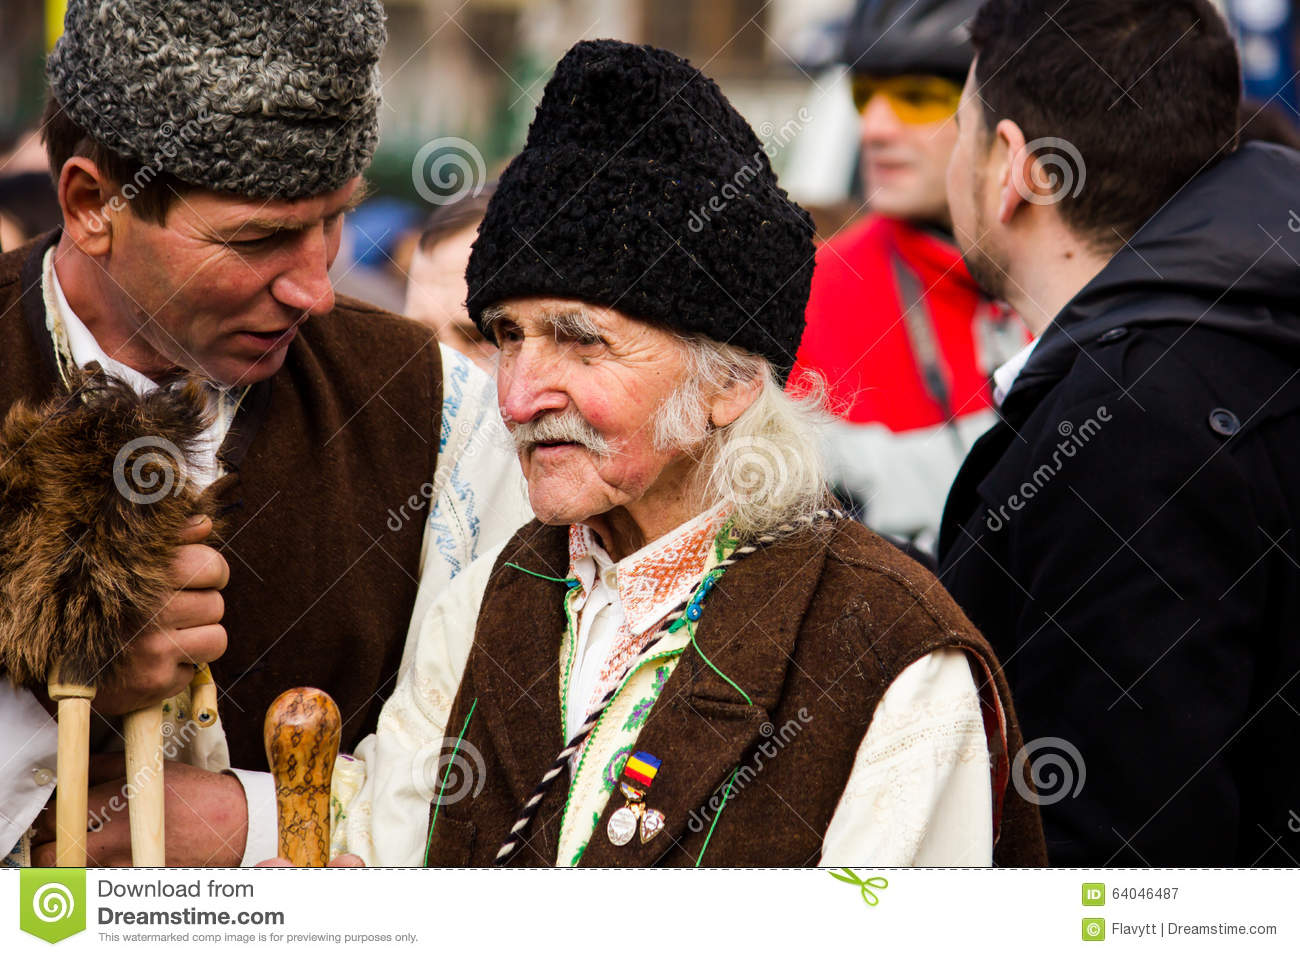 Man in Romanian traditional costume